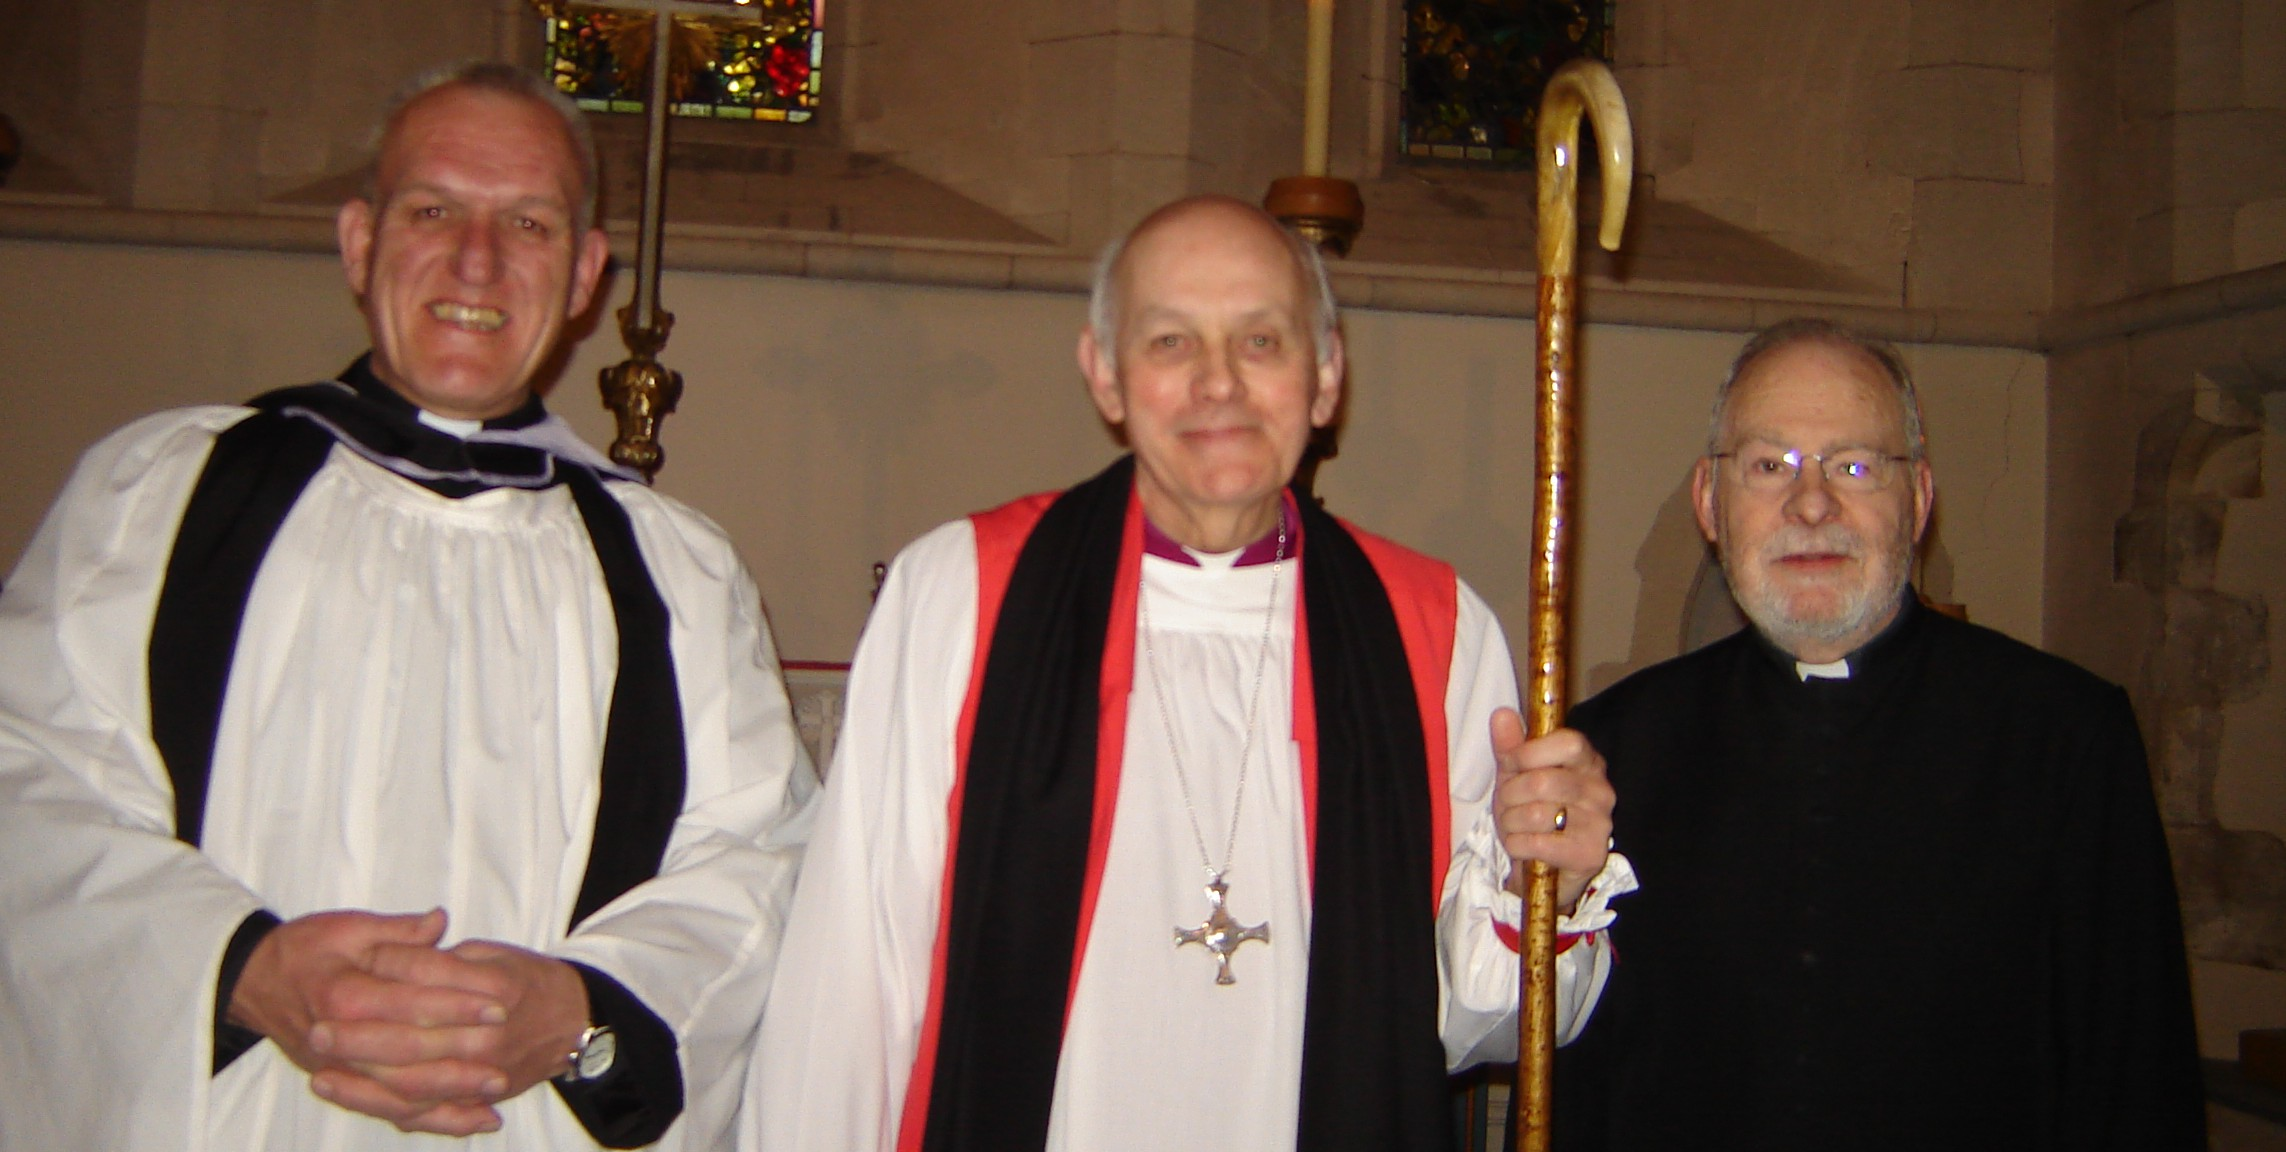 Licencing and Installation of Rev Chris Maclean at Lydd Church